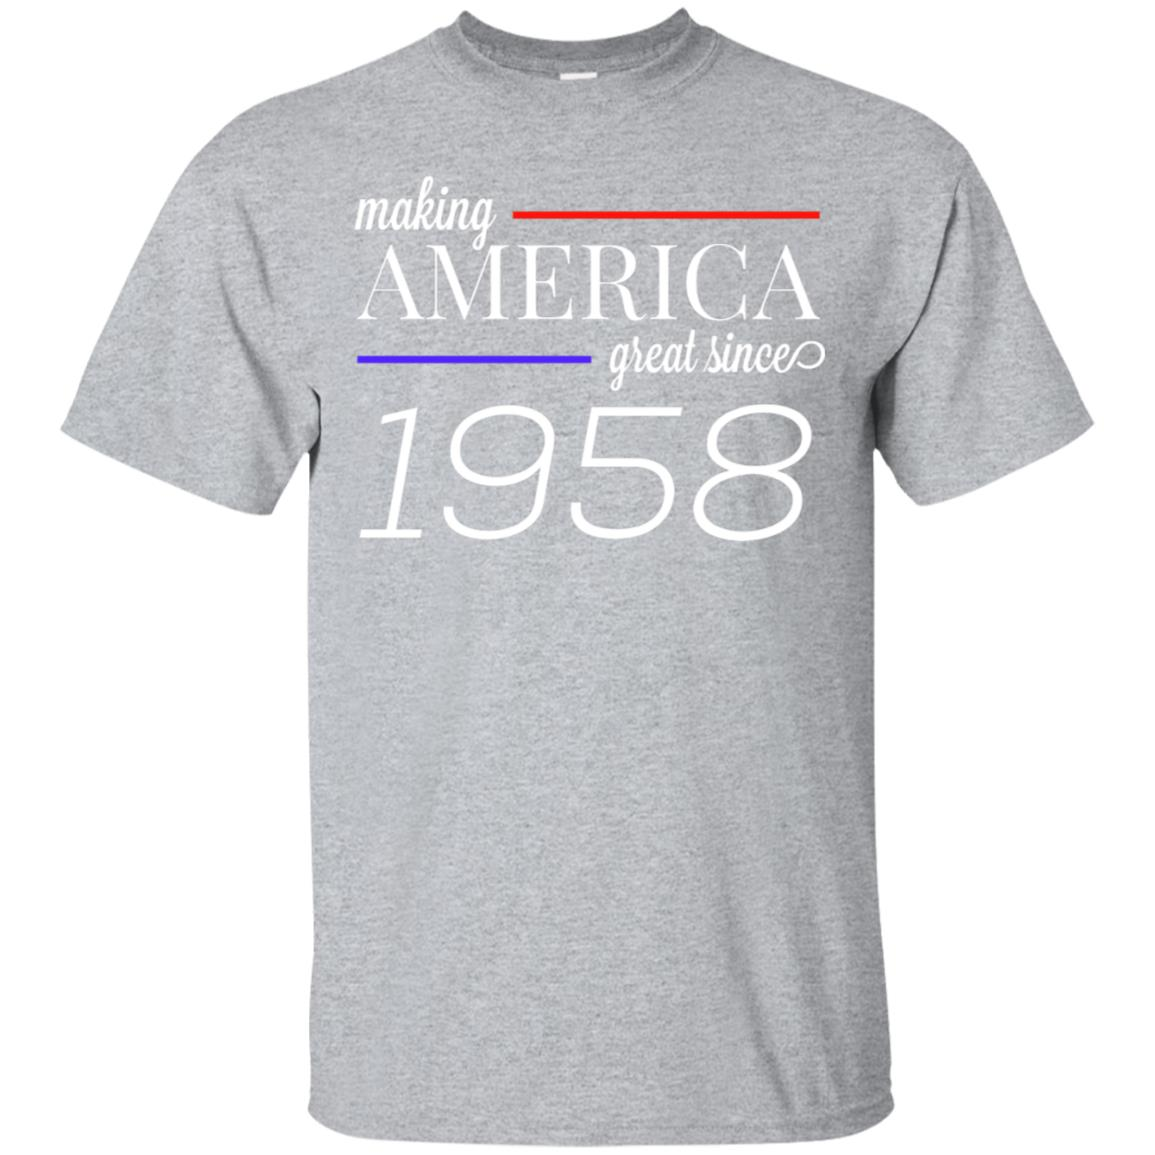 60th Birthday T-Shirt MAKING AMERICA GREAT SINCE 1958 gift 99promocode